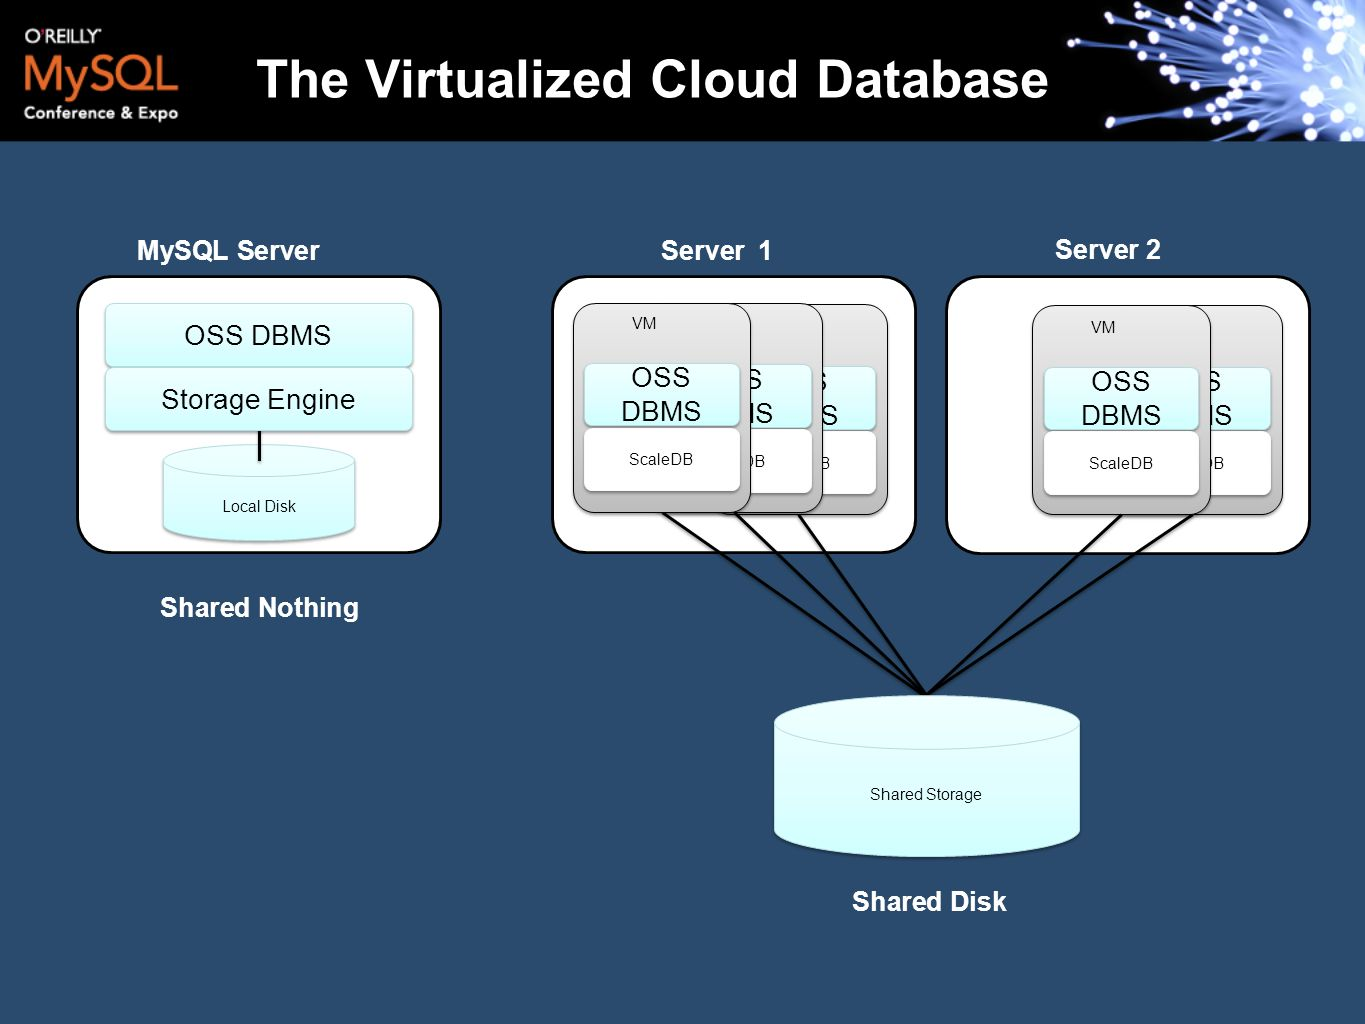 The Virtualized Cloud Database